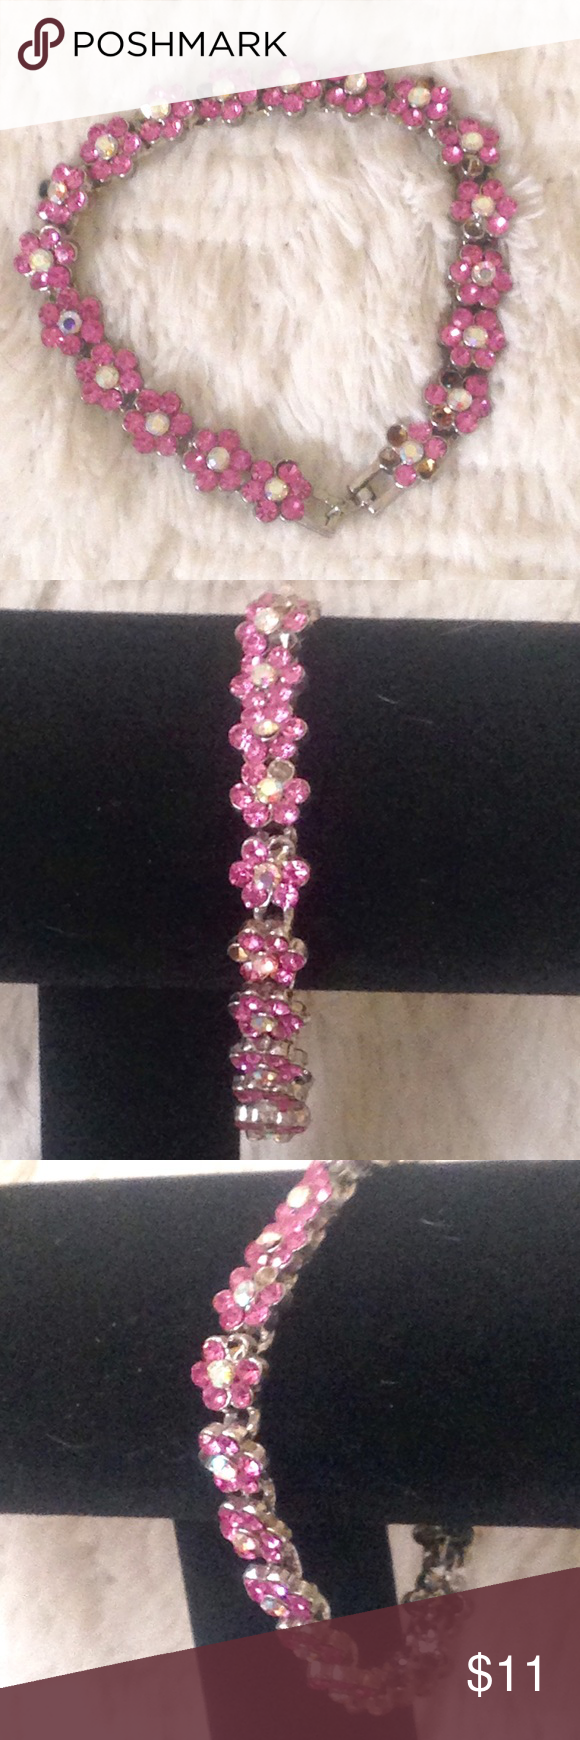 """Antique pink rhinestone flower bracelet For being an antique this perfect is in very good condition. It's Missing a couple of rhinestones but the silver tone base the stones are set in is in great condition. The closure of the bracelet is a small hook shown in pictures.   Approximately 7"""" in length  🛑 No trades or lowball offers 👎🏻 My closet items aren't for personal profit, are already extremely discounted and sell very fast. So if you see things you 😍 ♥️, make an offer!  🎀 Free gift…"""